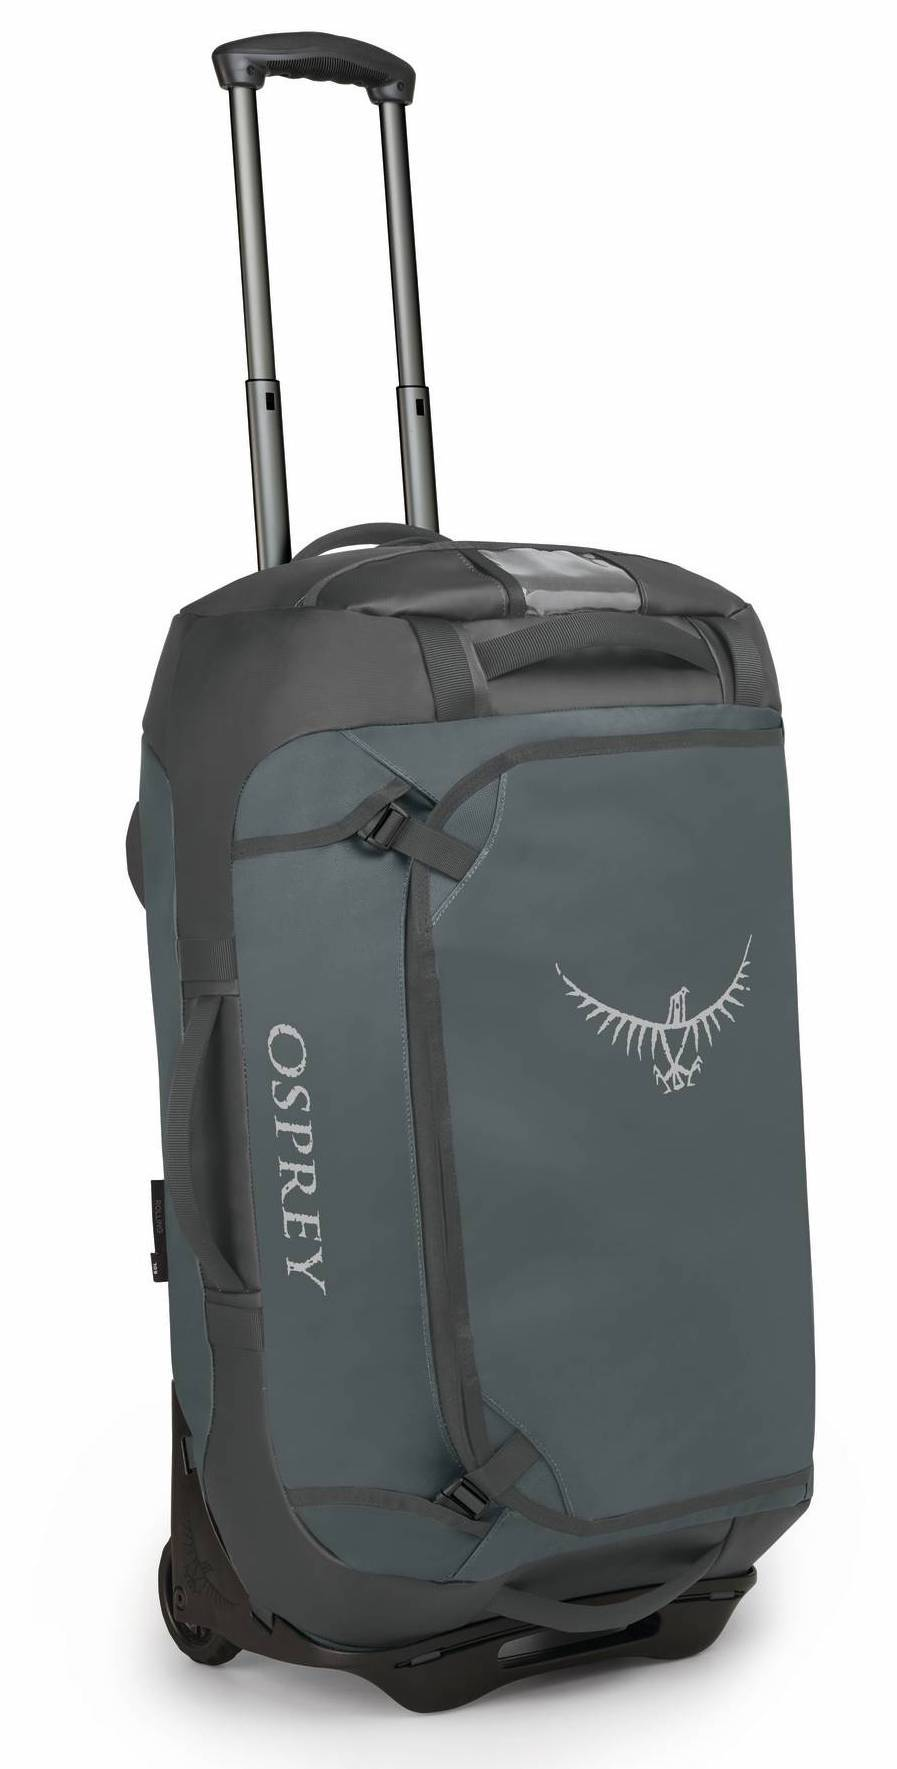 Сумки на колесах Сумка на колесах Osprey Rolling Transporter 60 Pointbreak Grey Rolling_Transporter_60_F20_Side_Pointbreakgrey_web.jpg